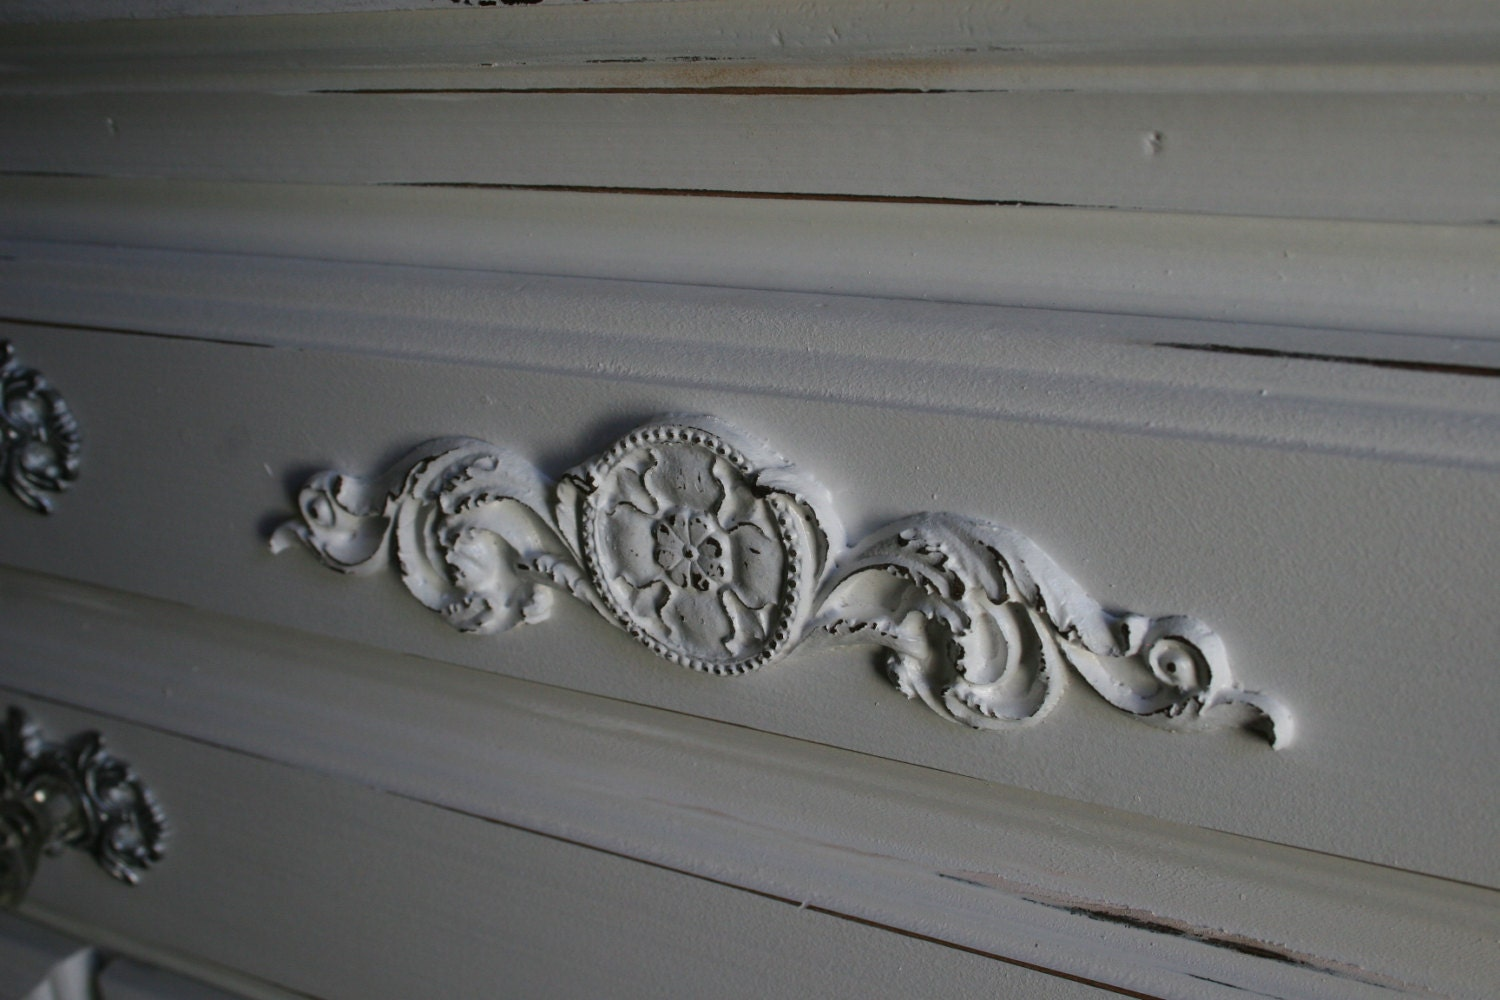 Appliques for furniture Dresser Etsy Diy Shabby Chic Applique Furniture Applique Onlay Etsy